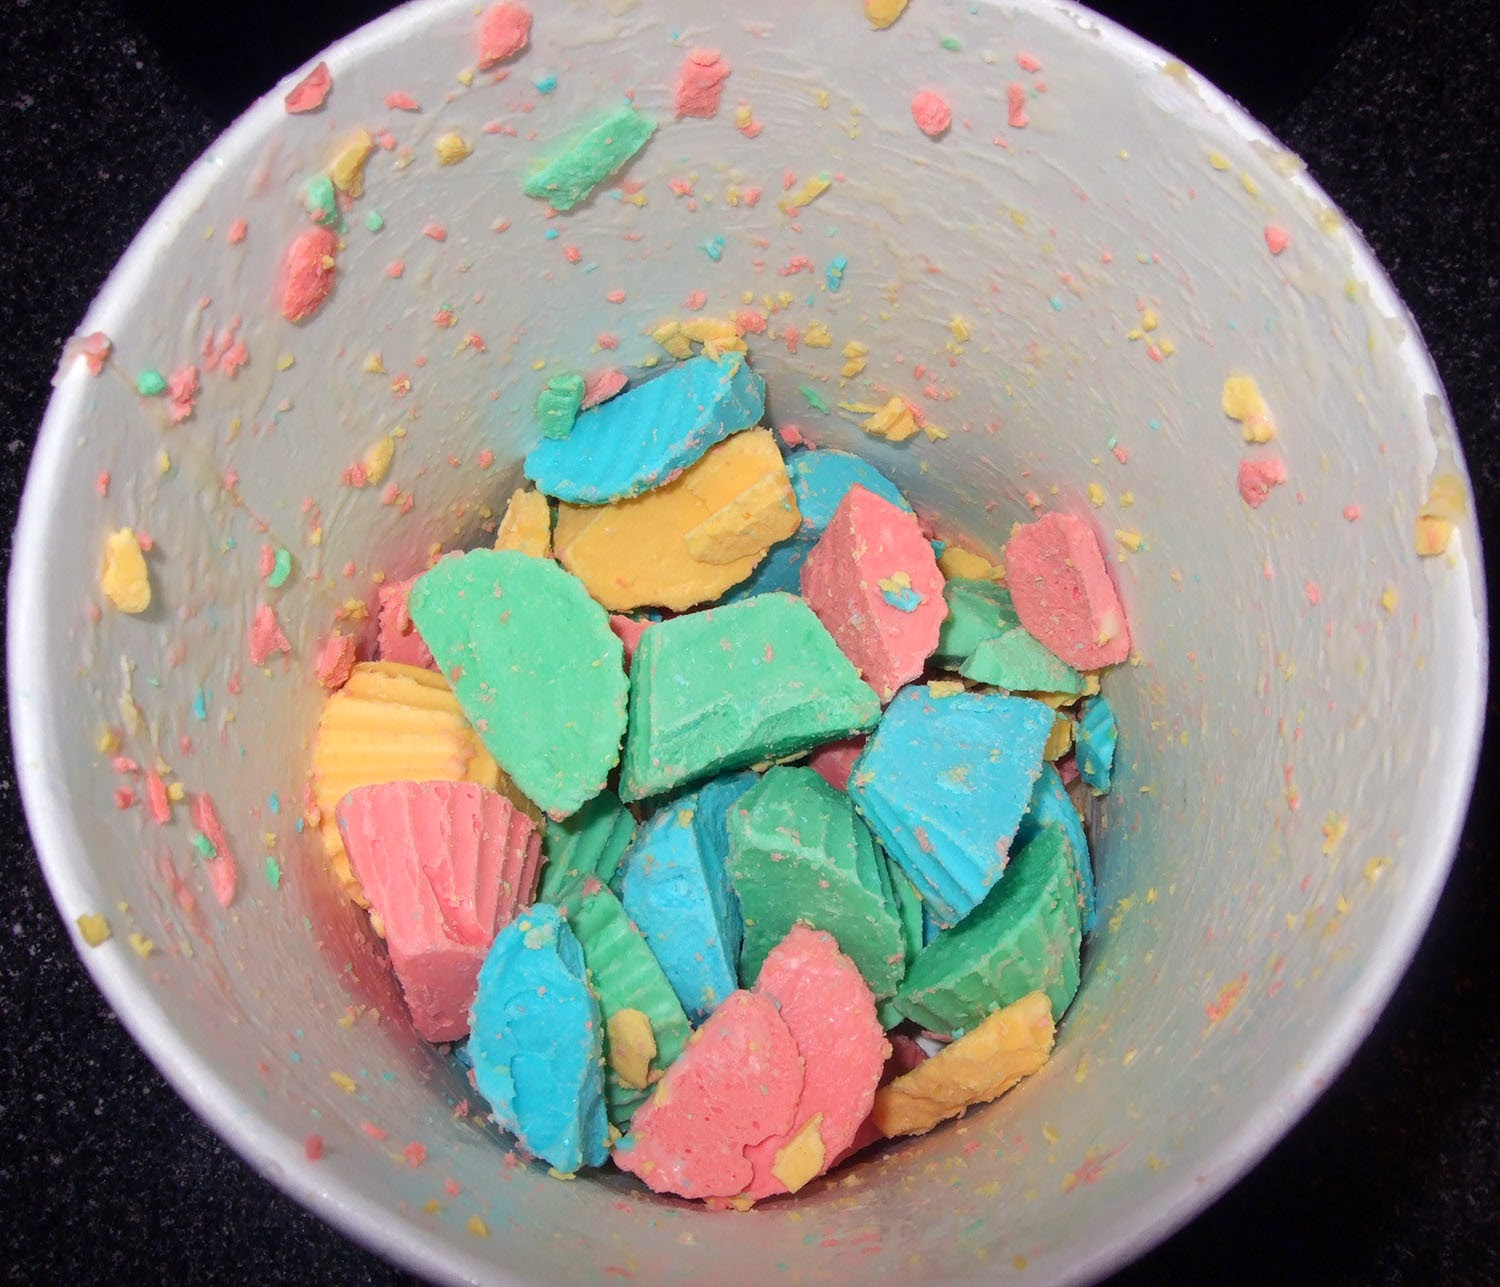 Cut up frosting bombs in ice cream container.